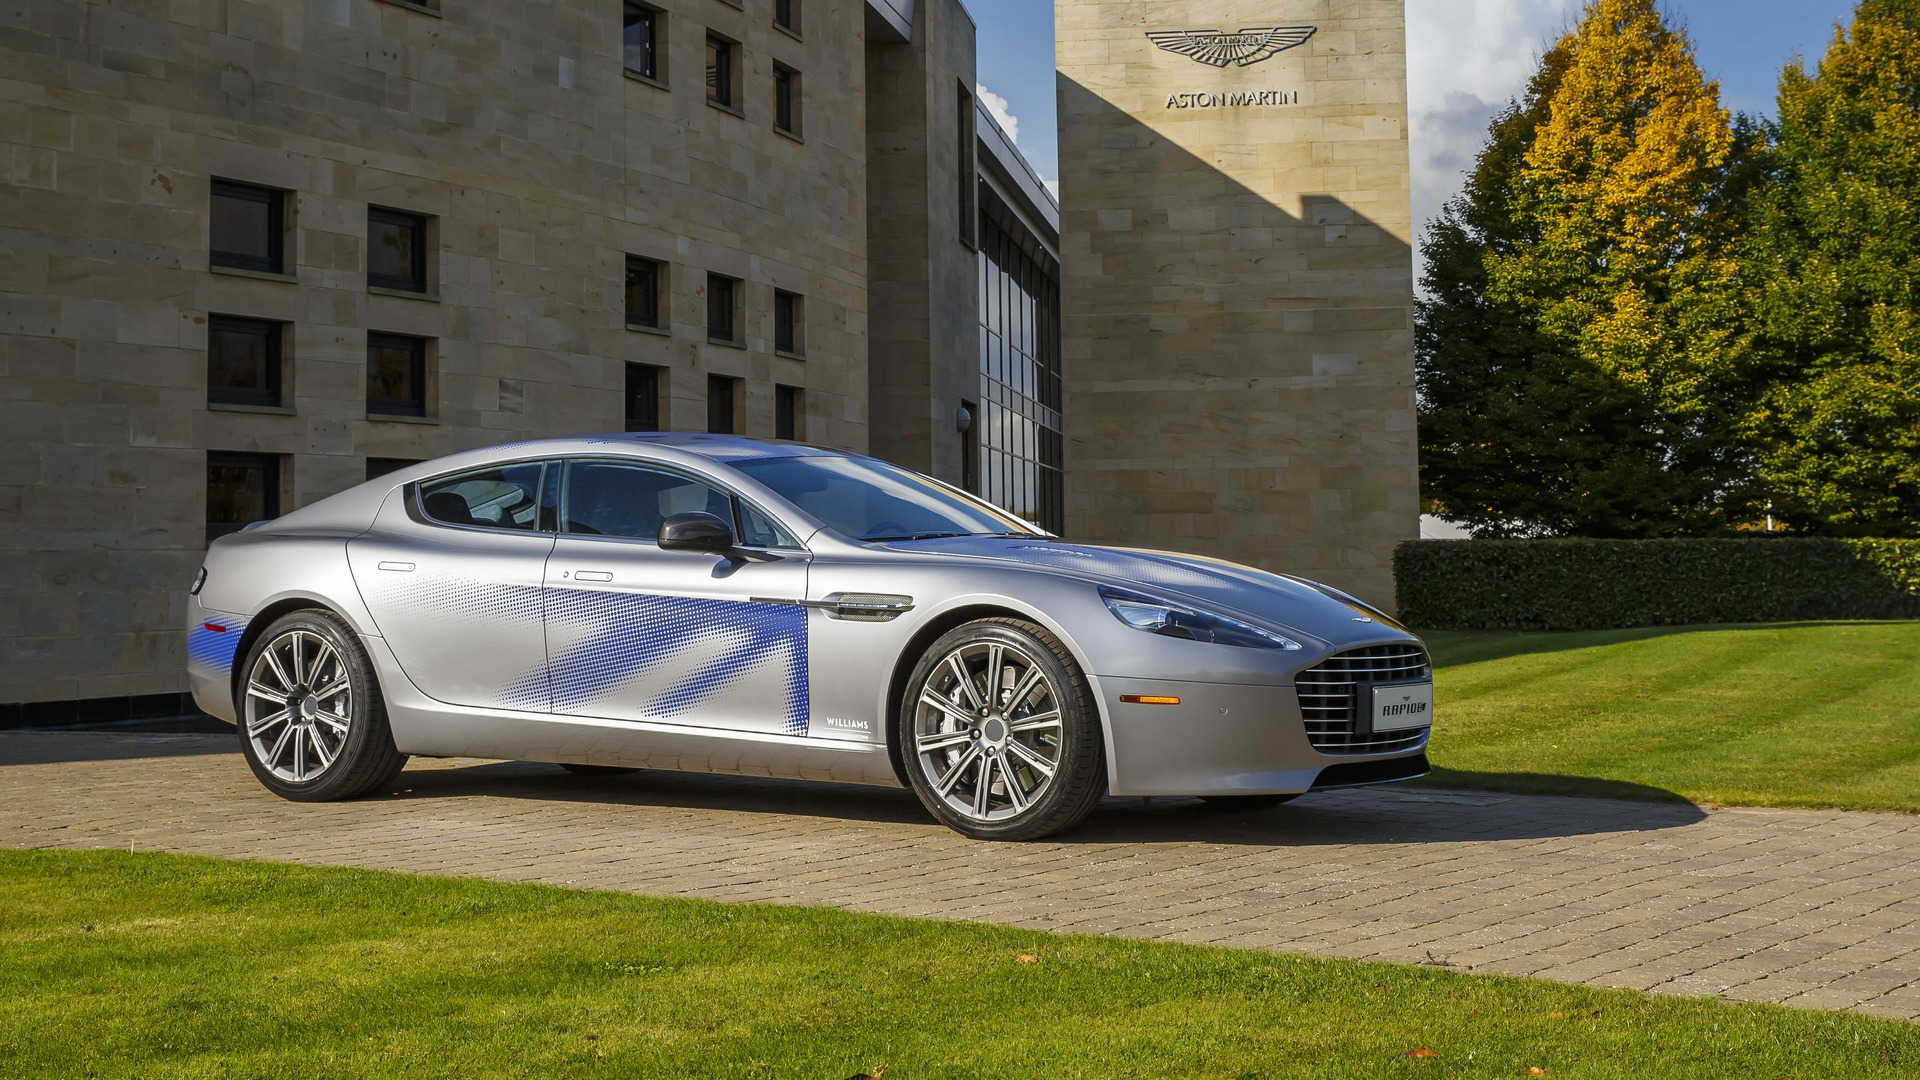 Aston Martin Rapide To Lose V Engine And Go Electric In - 2018 aston martin rapide s